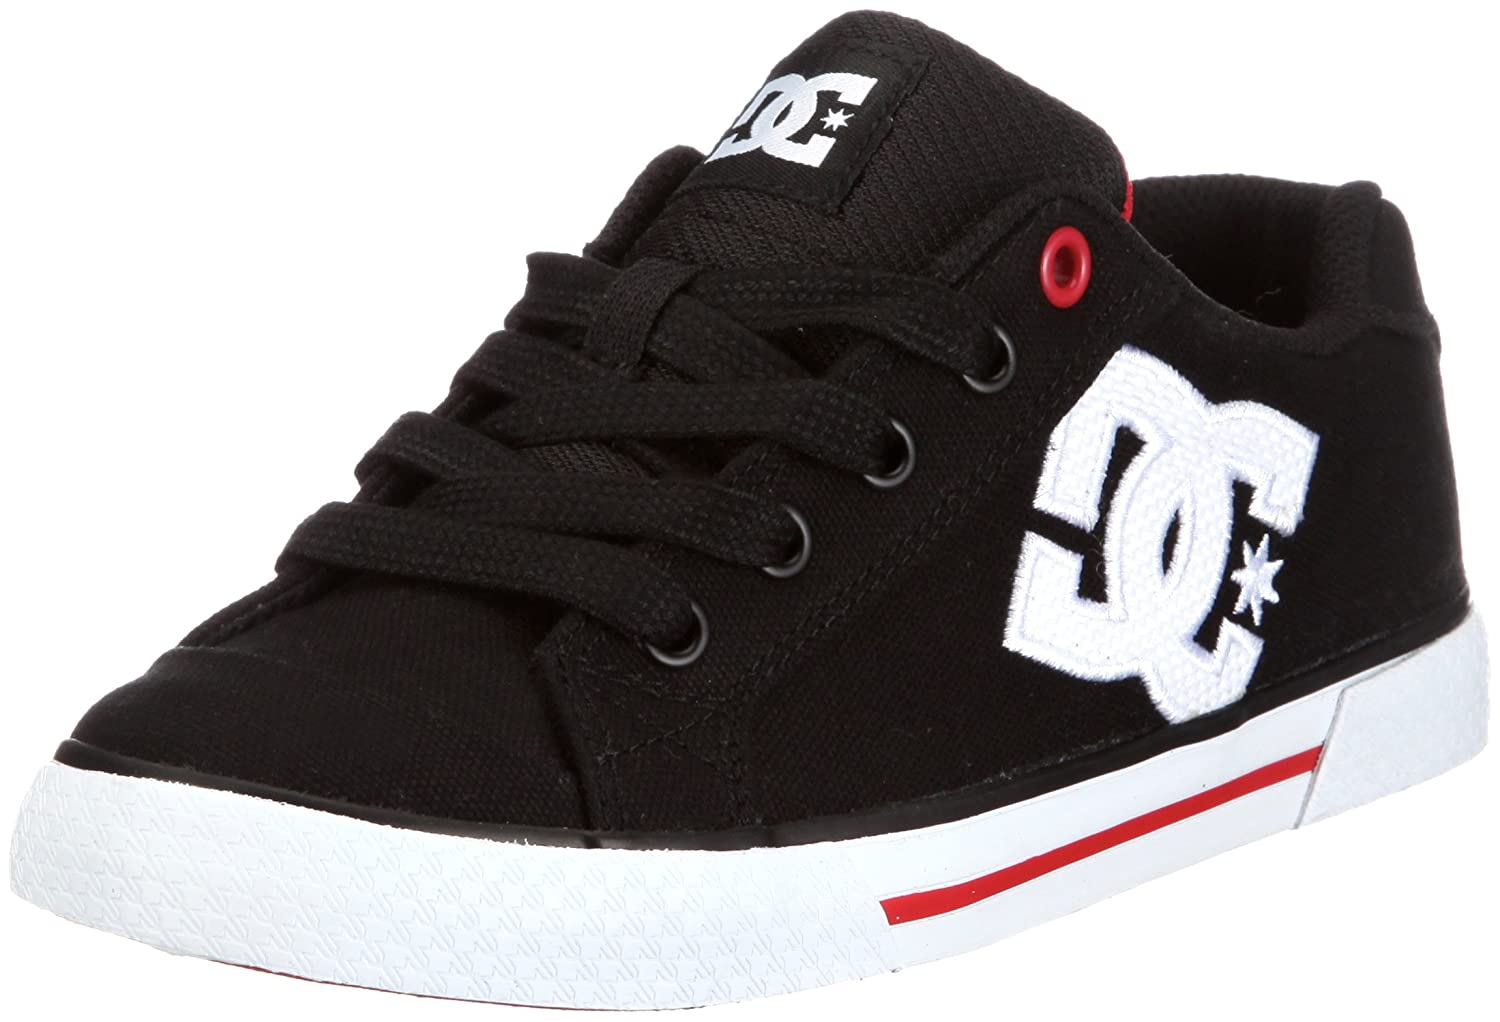 DC Women's Chelsea Tx Action Sports Shoe B004LZ4RMM 11 B(M) US|Black